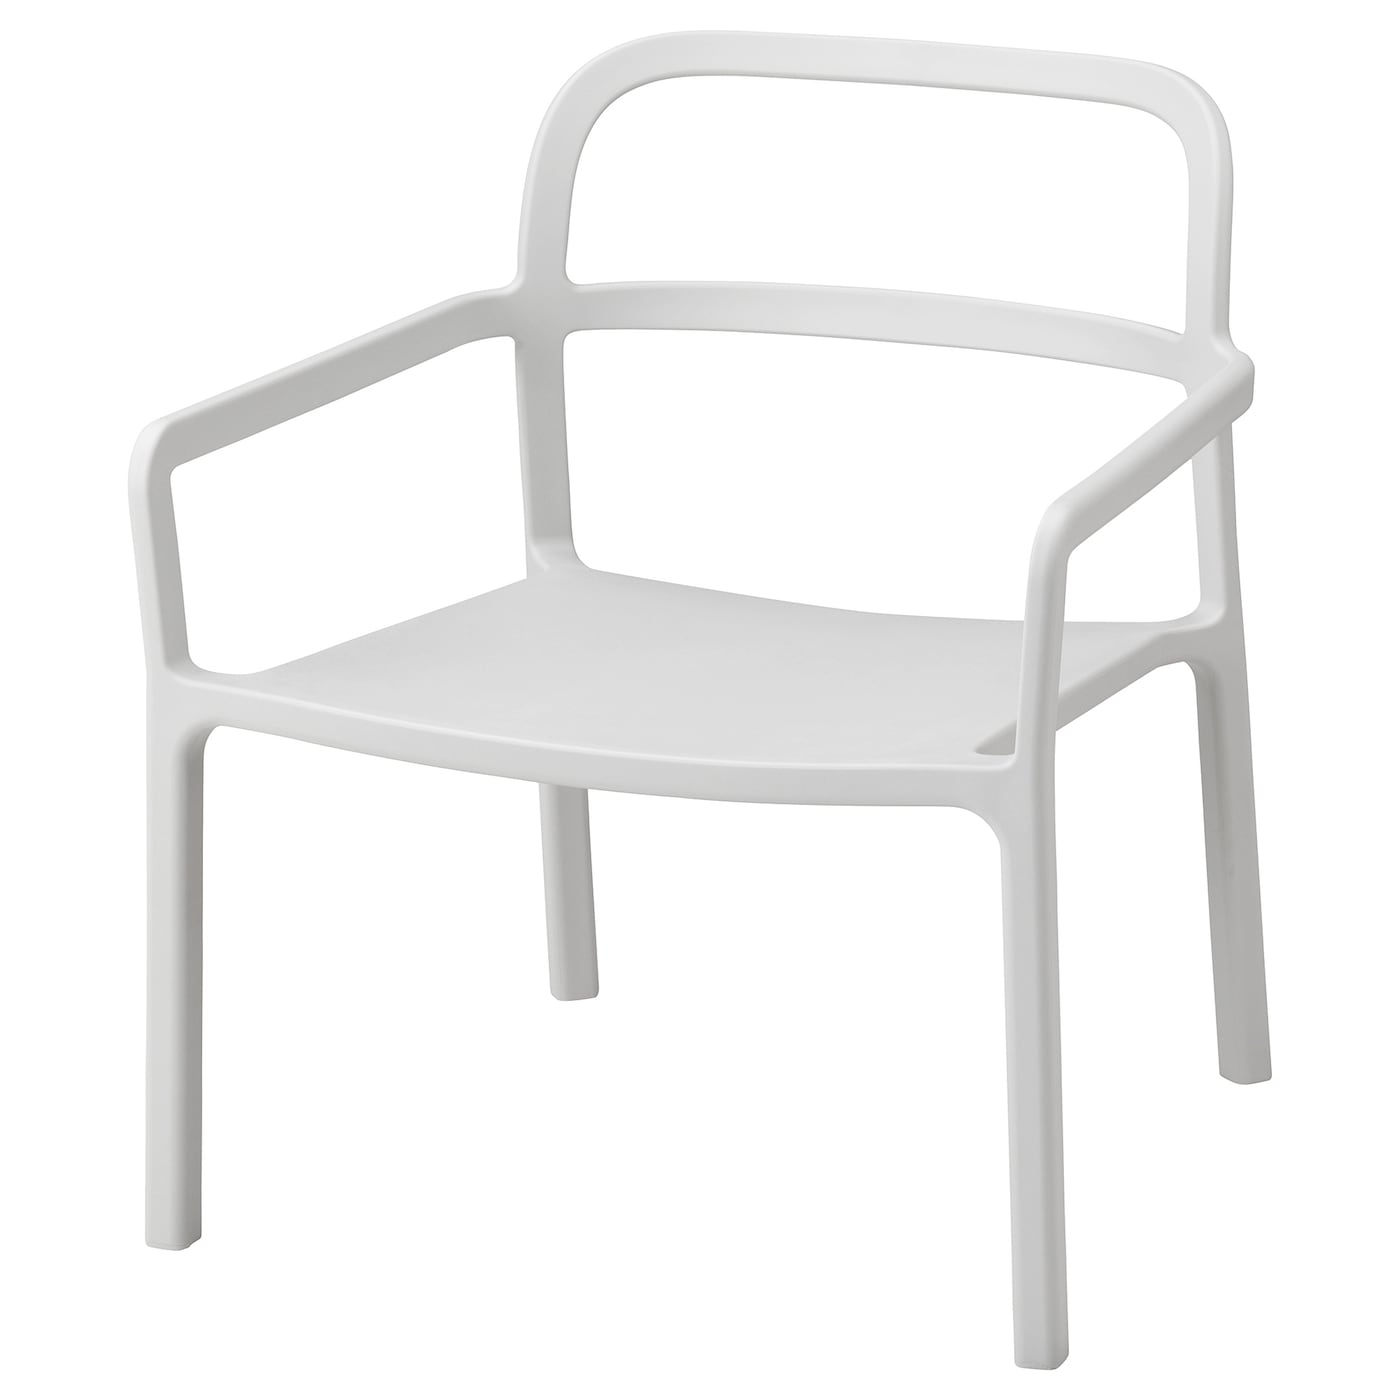 IKEA YPPERLIG armchair, in/outdoor